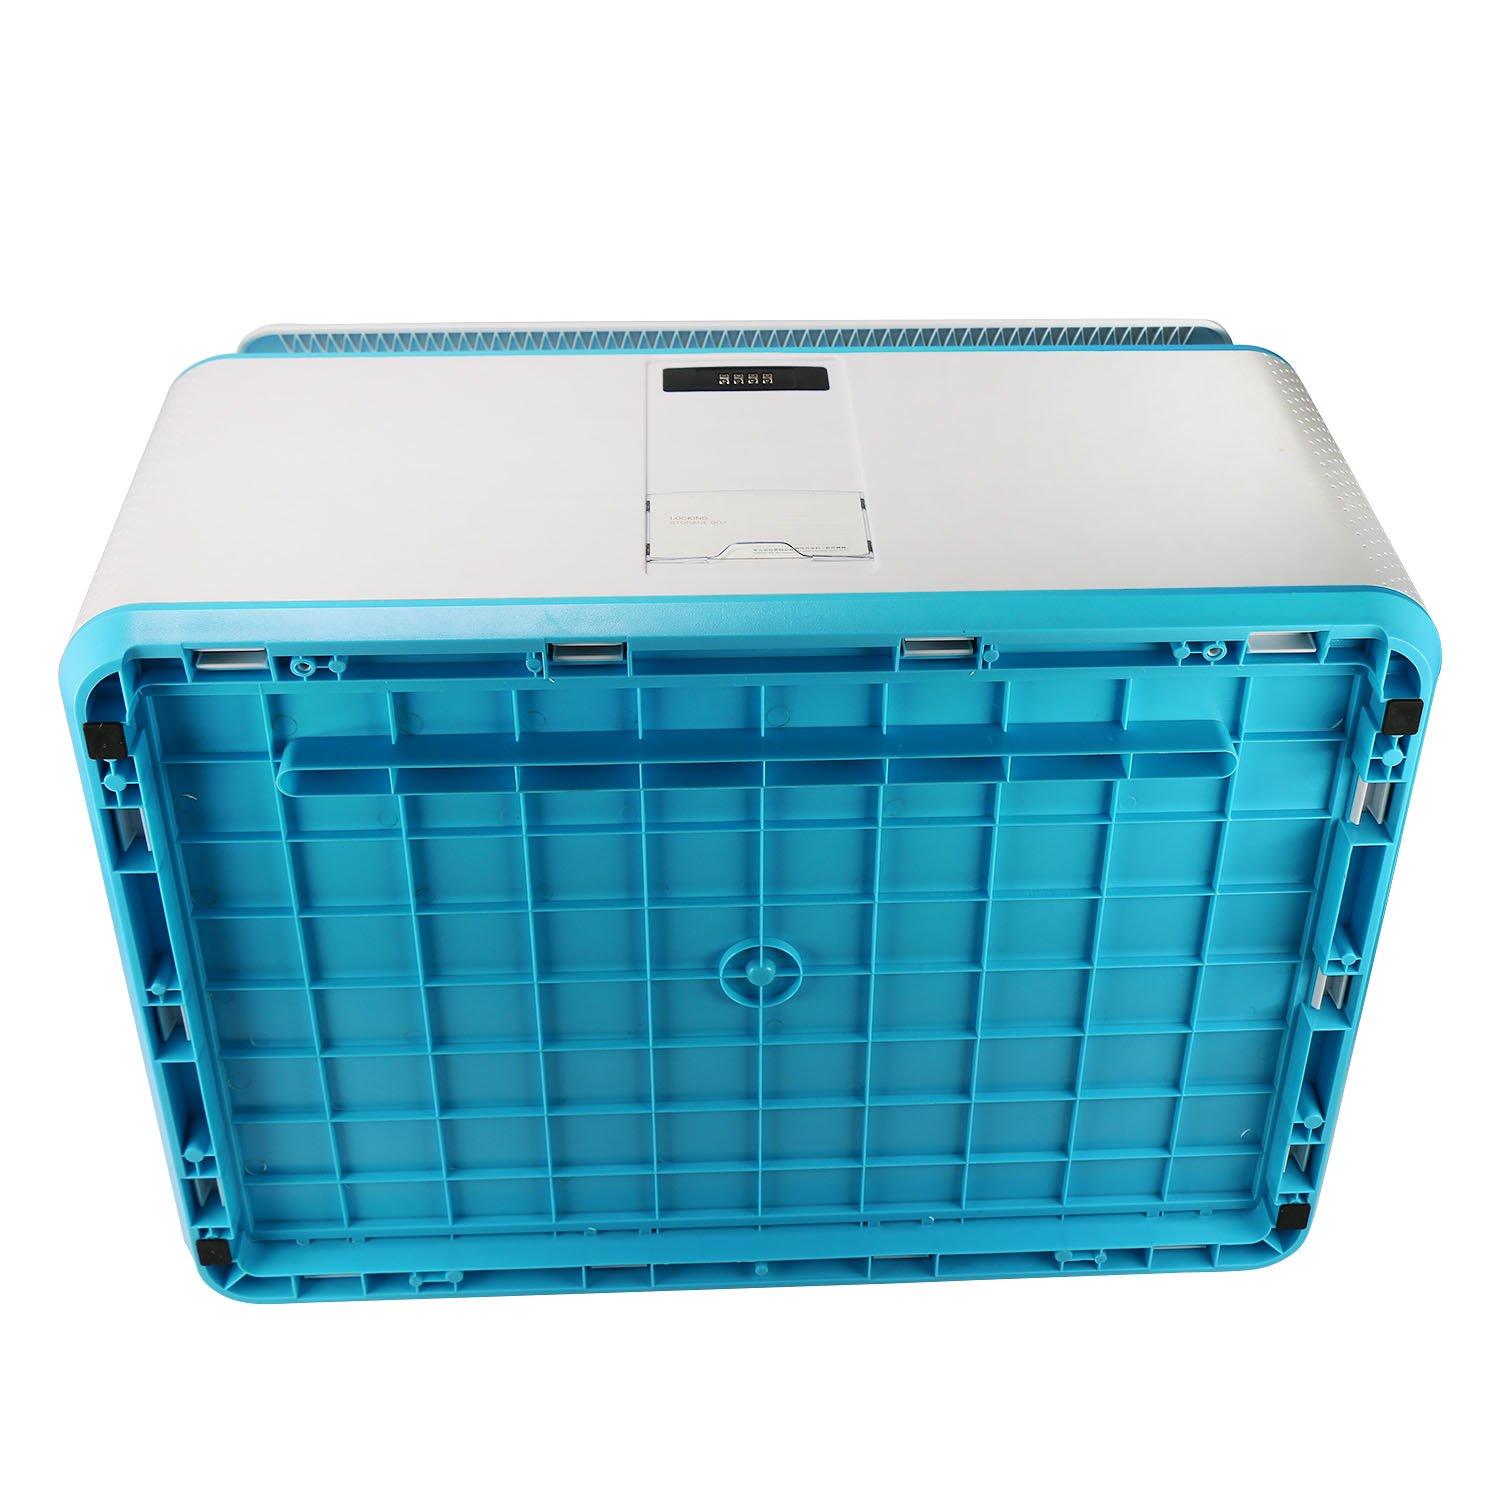 EVERTOP Extra Large Deck Box for Home, Office, Car, White with Code Lock (A-Green) by EVERTOP (Image #6)